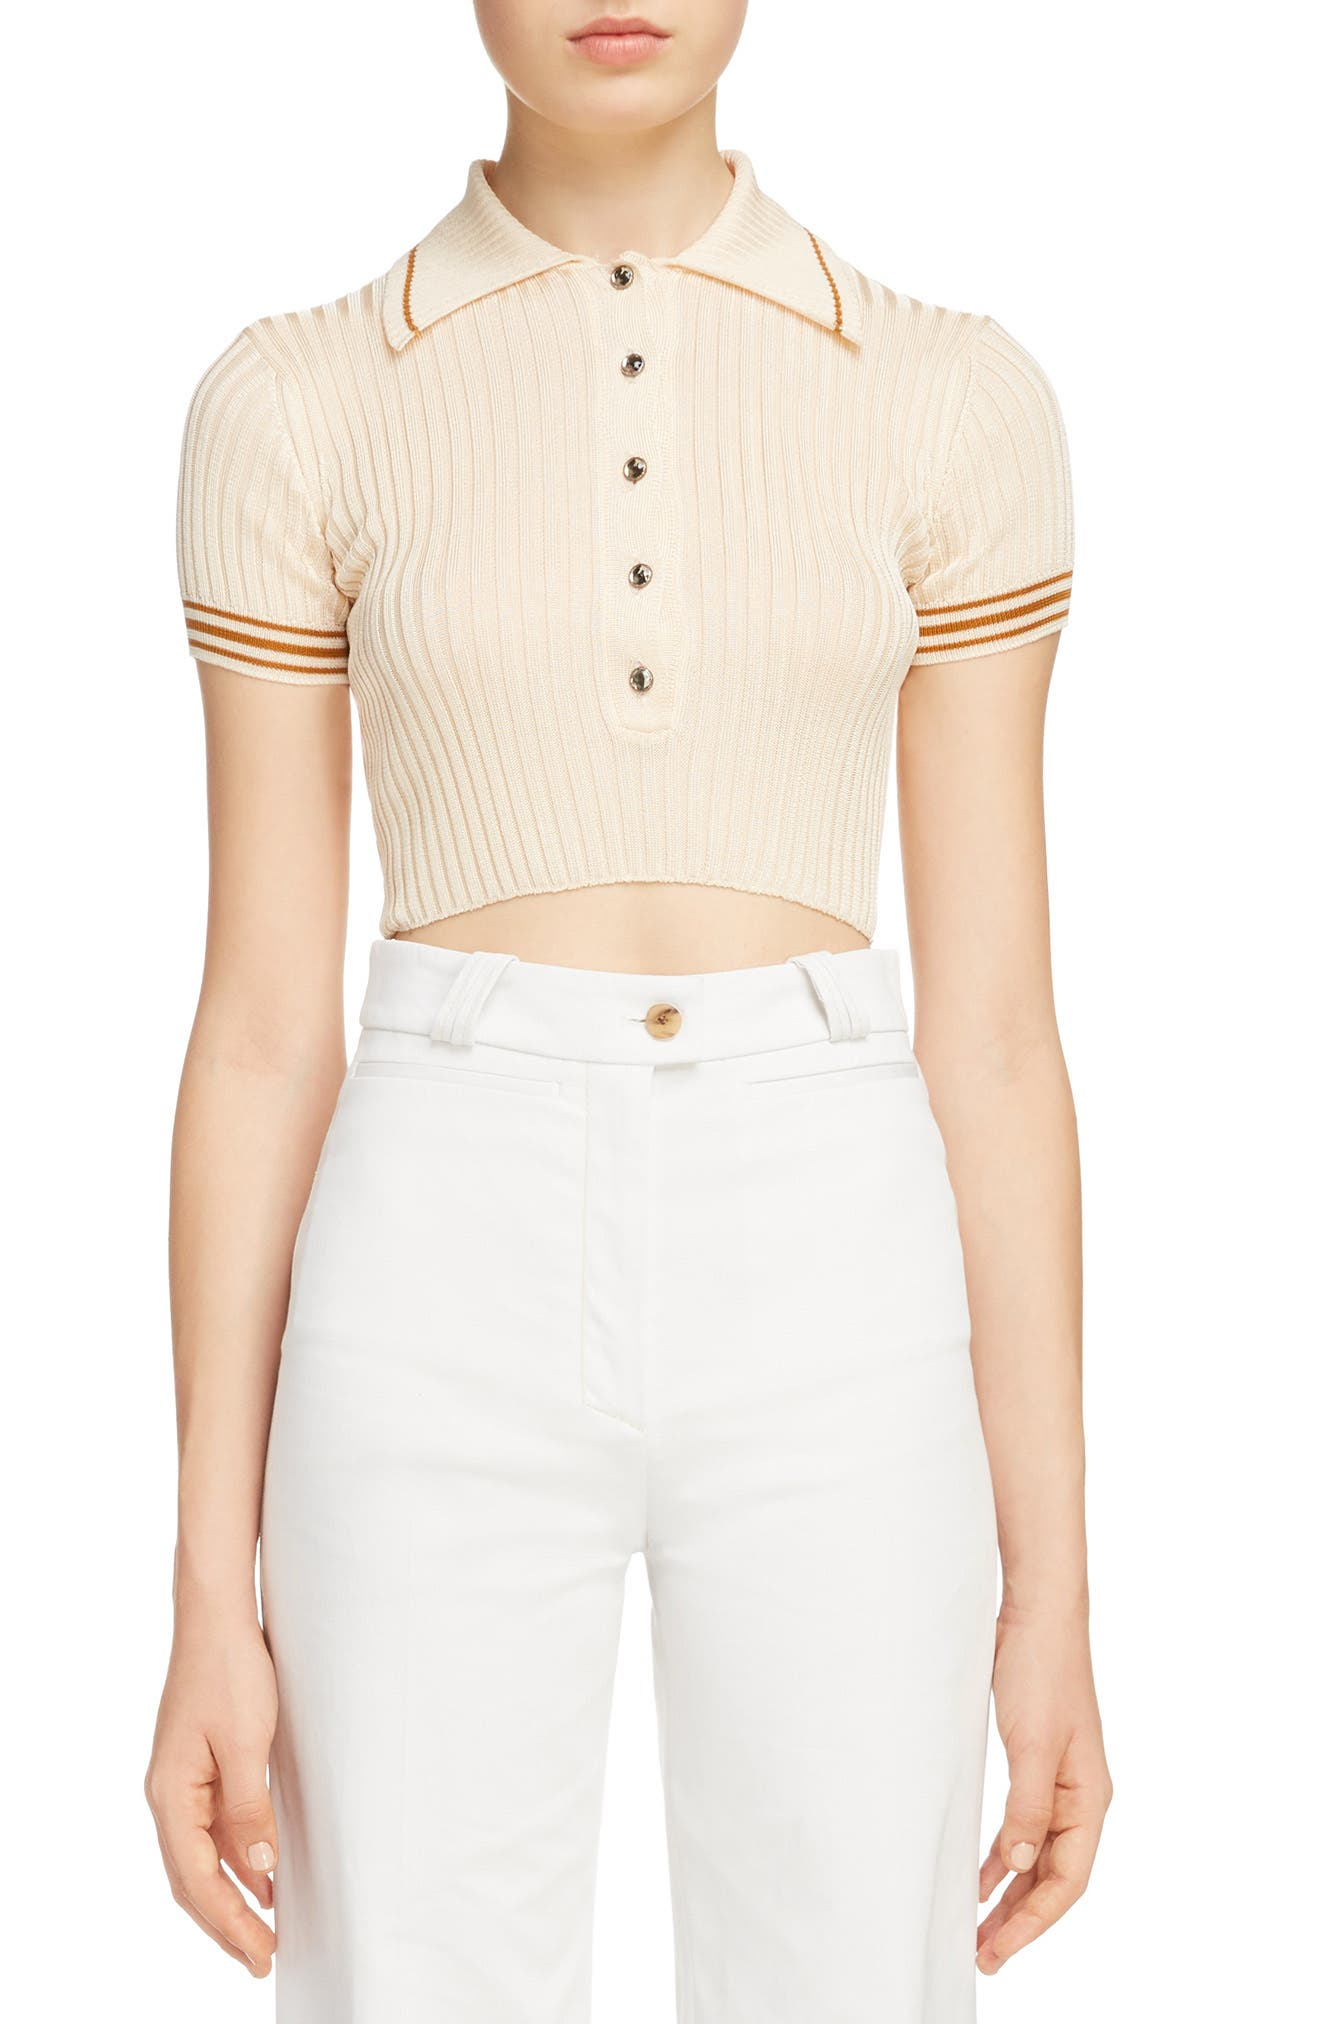 Shanita Lingerie Crop Polo Sweater,                         Main,                         color, Ivory White/ Tobacco Stripe